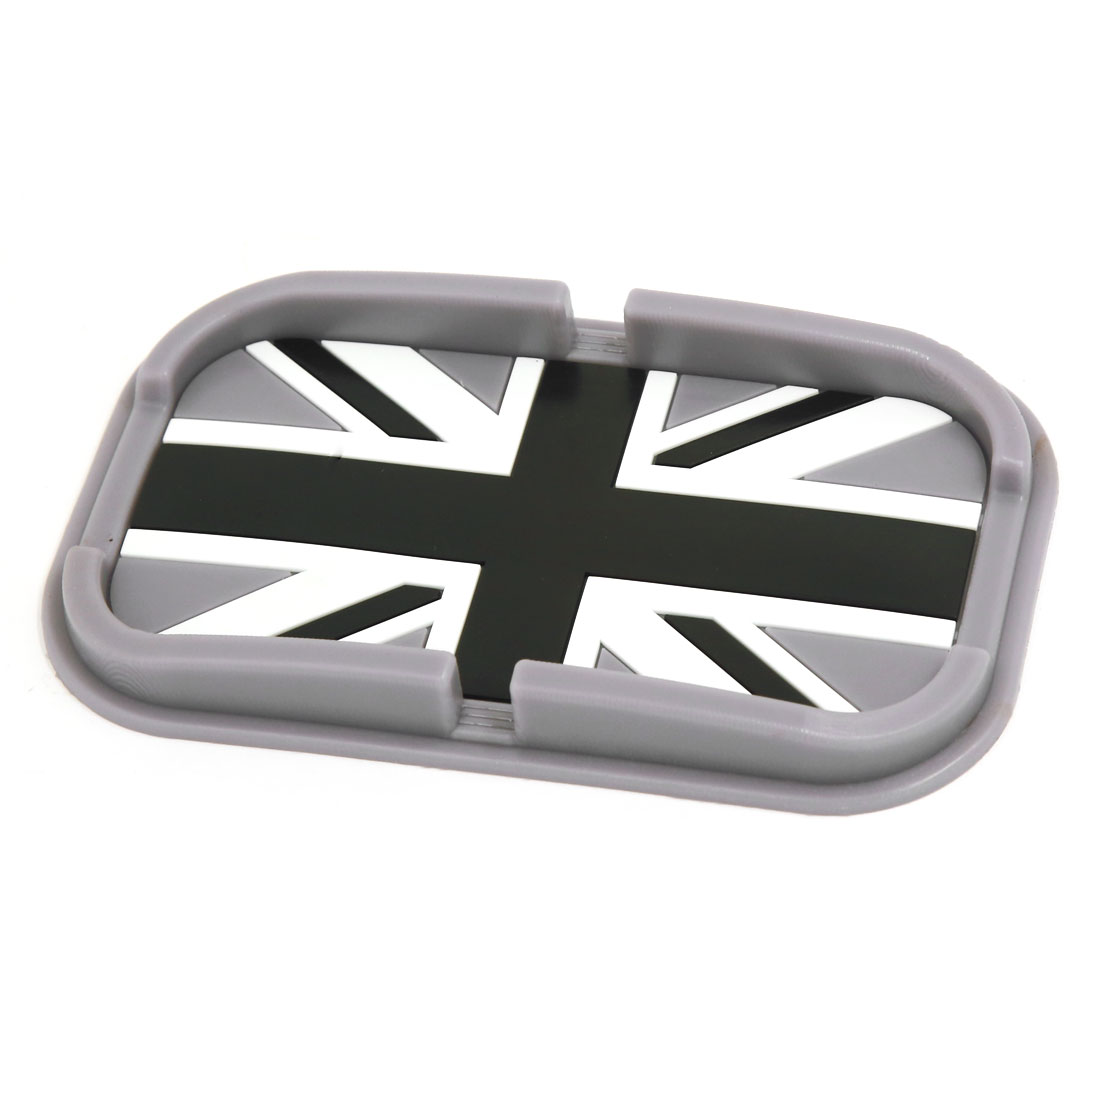 Automobile Navigation Black Rubber British Flag Pattern Non-Slip Pad Mat Holder